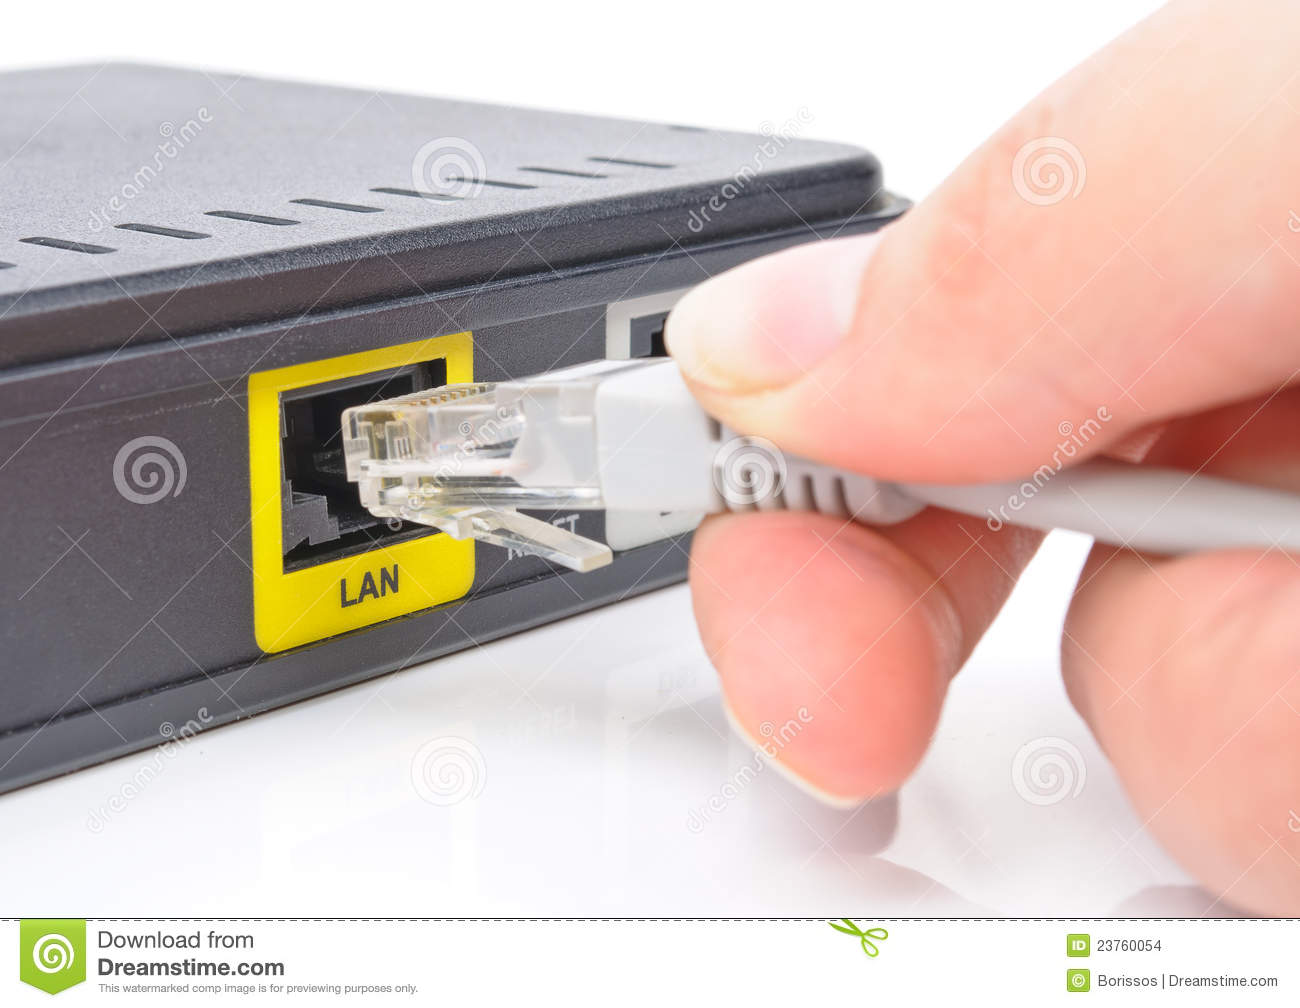 network switch how to connect